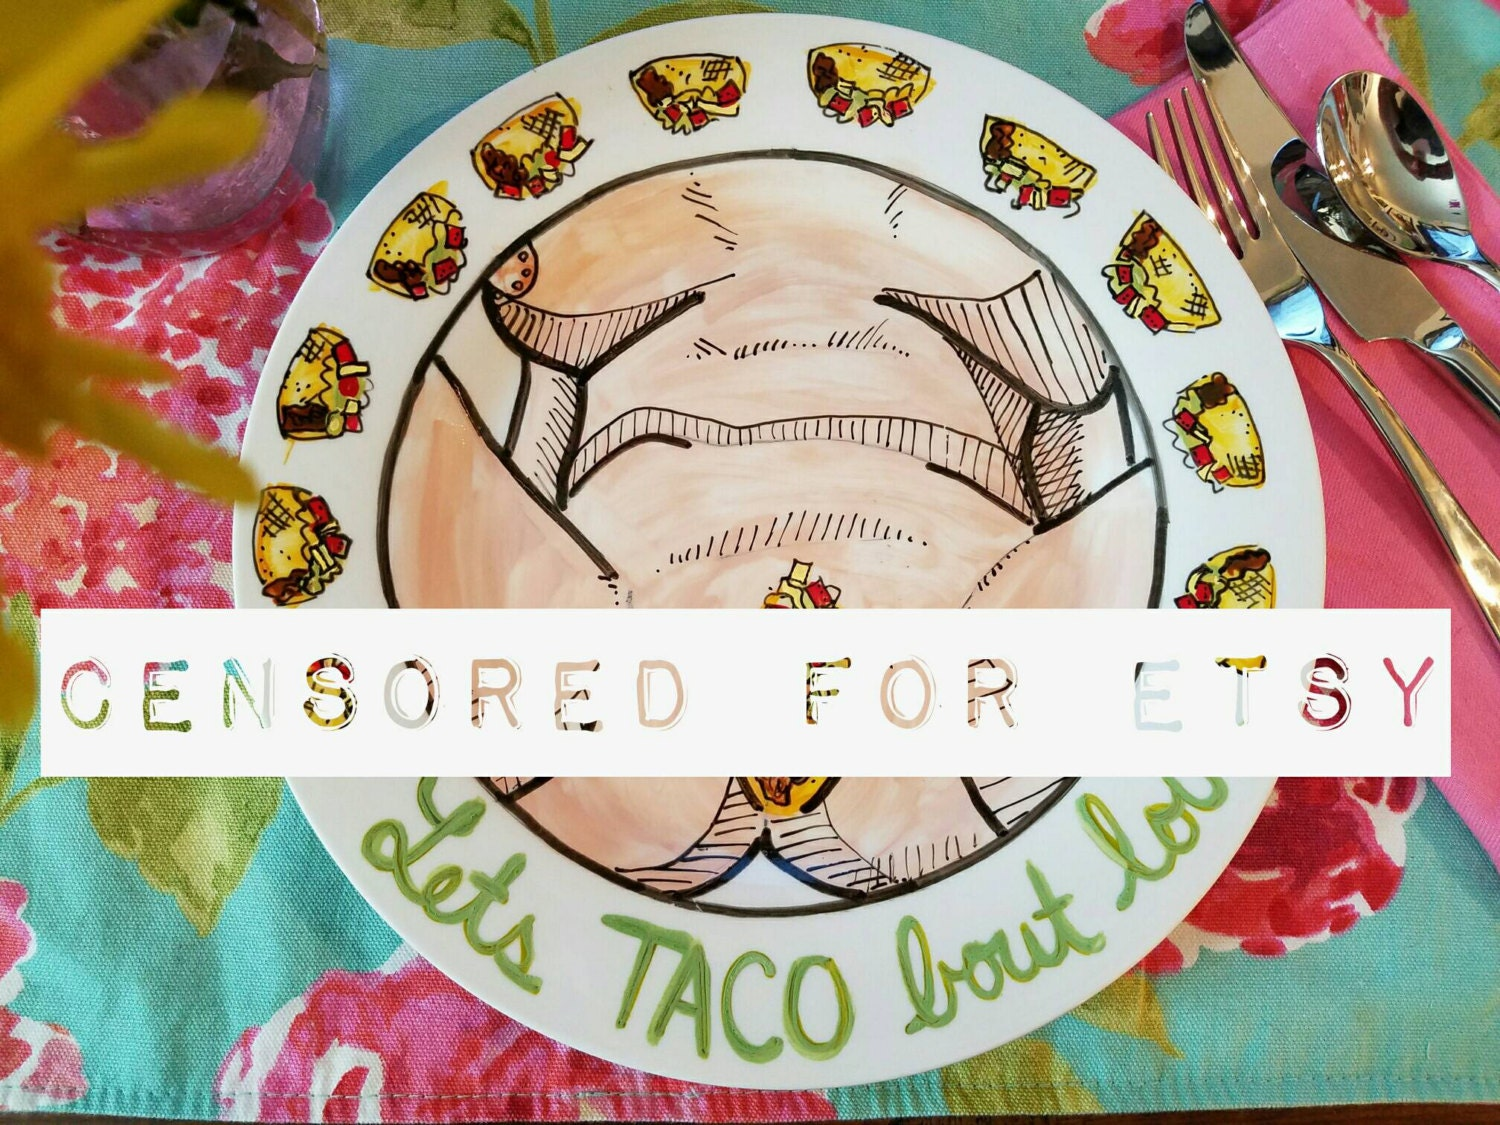 Sexy Taco Plate Dirty Taco Plate Lets Taco Bout Love Adult-1523